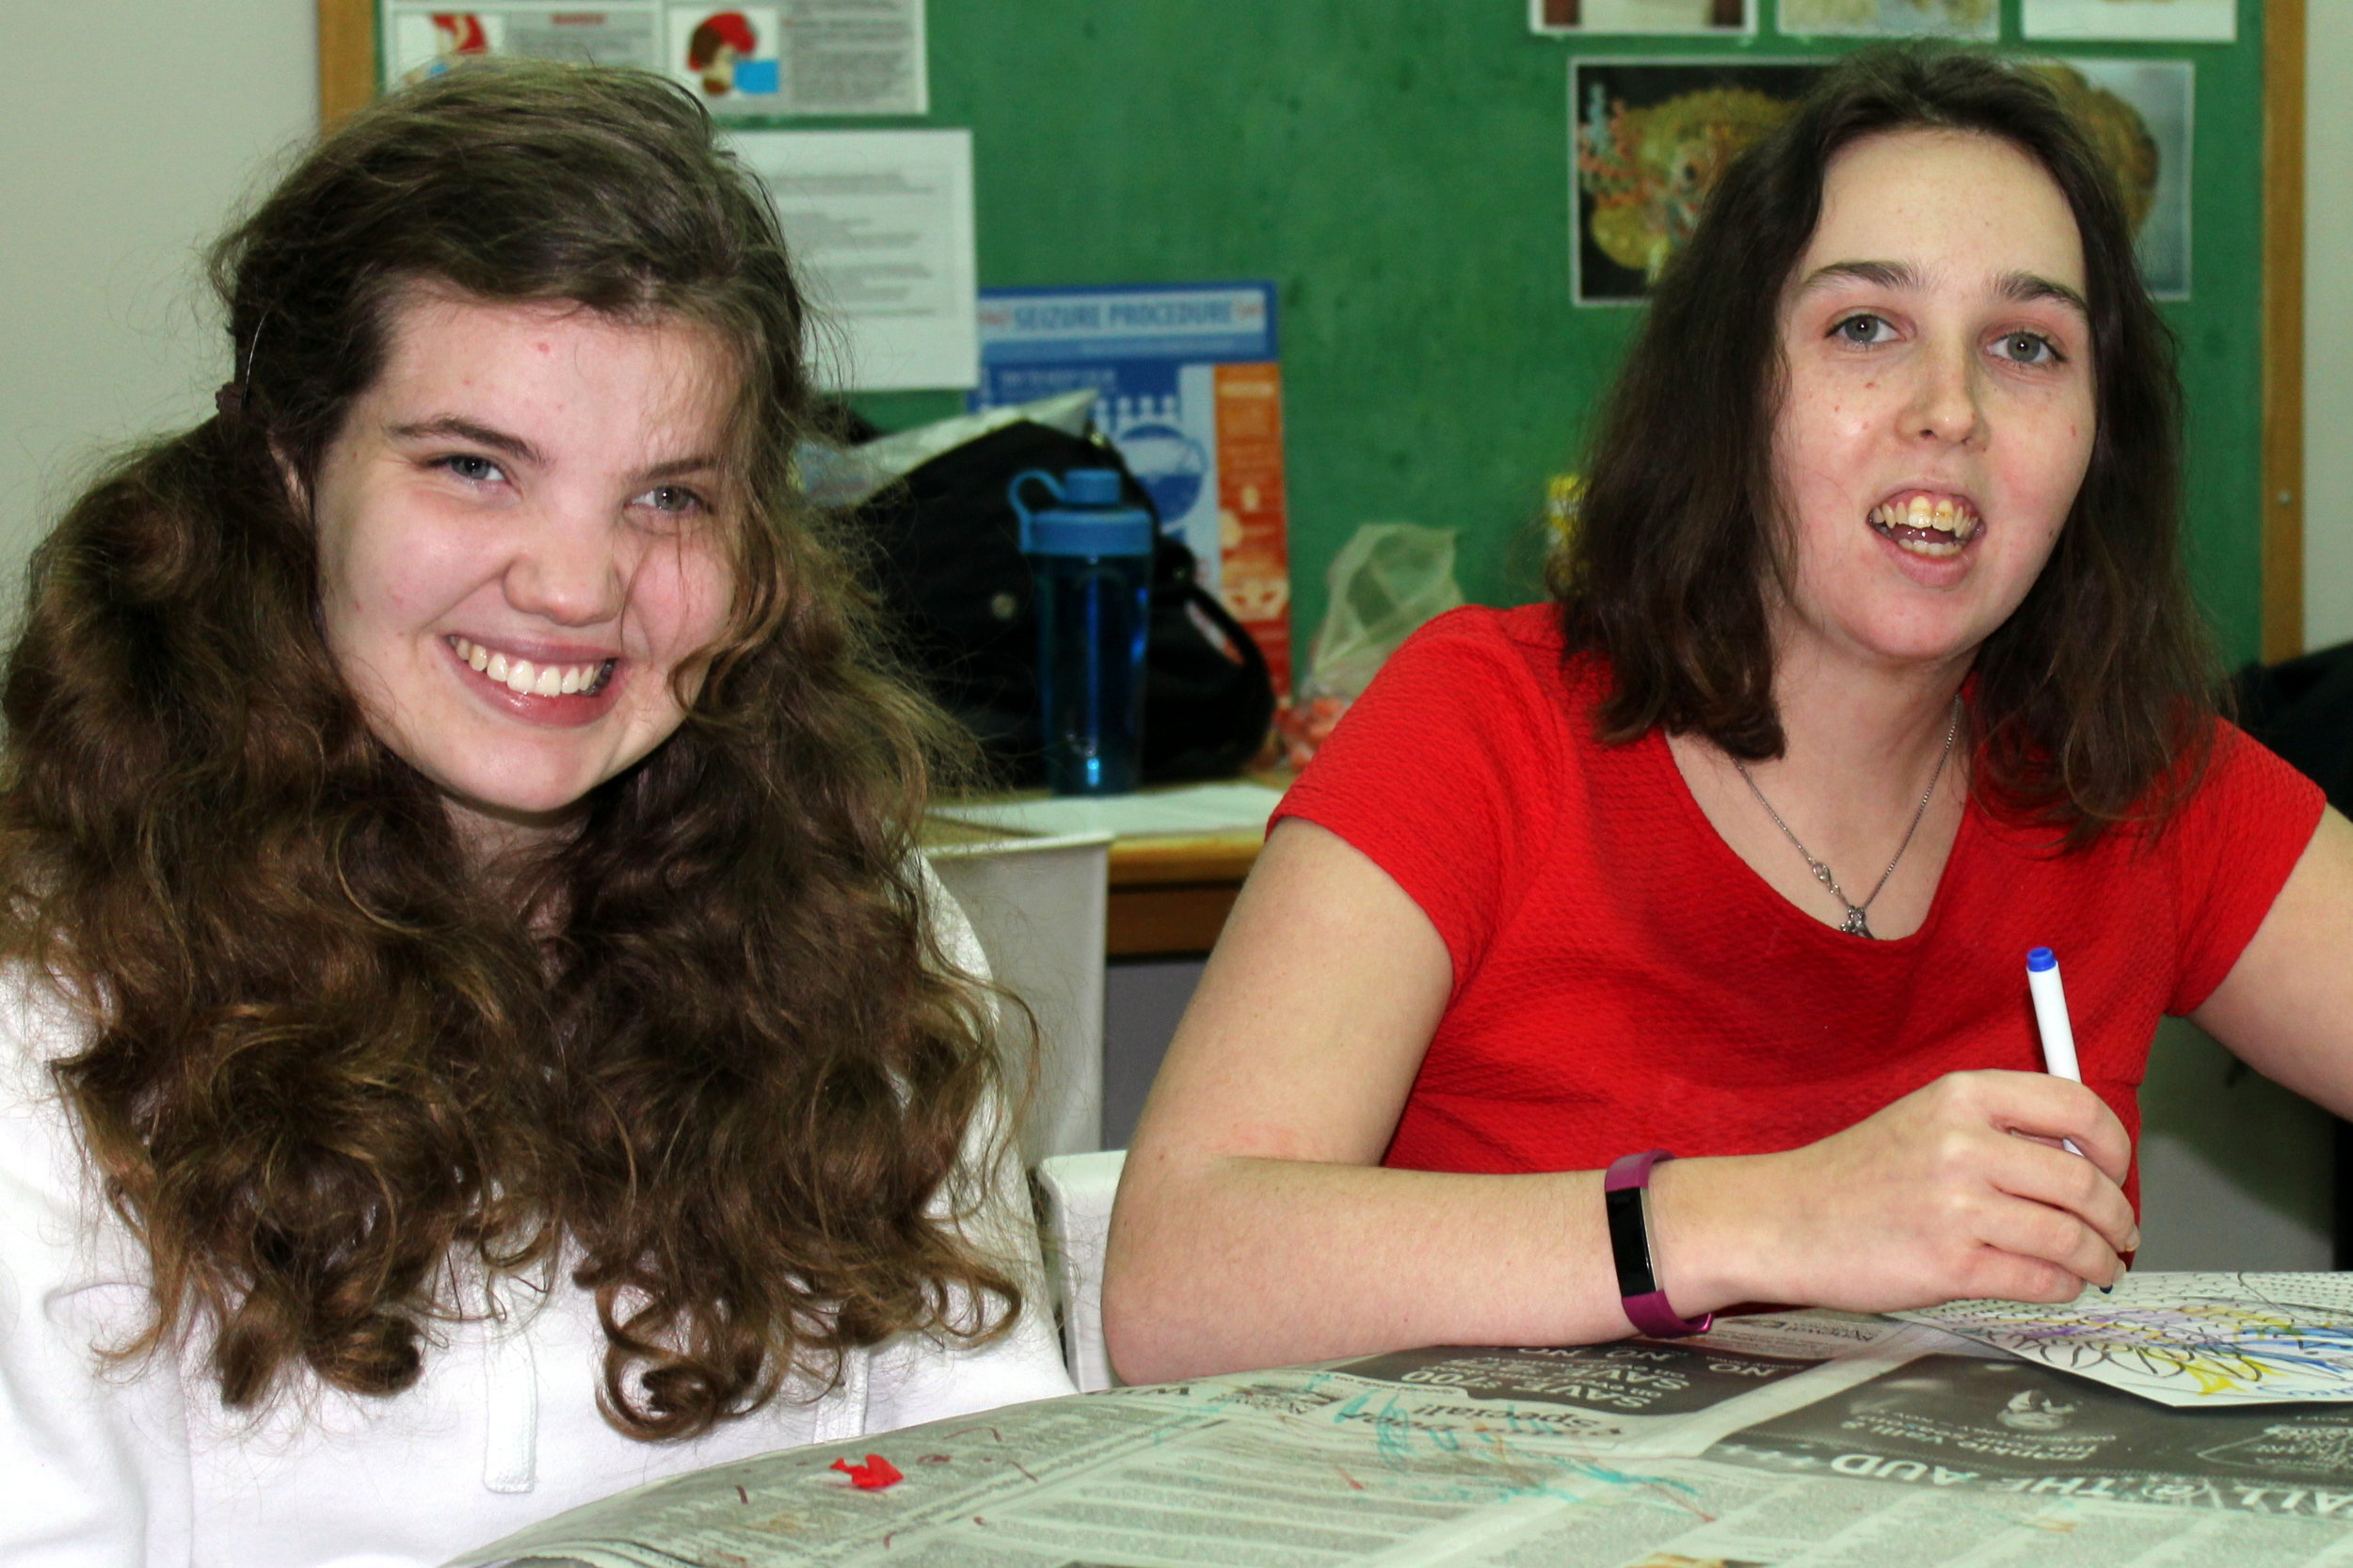 Two female participants smiling, drawing in an art program